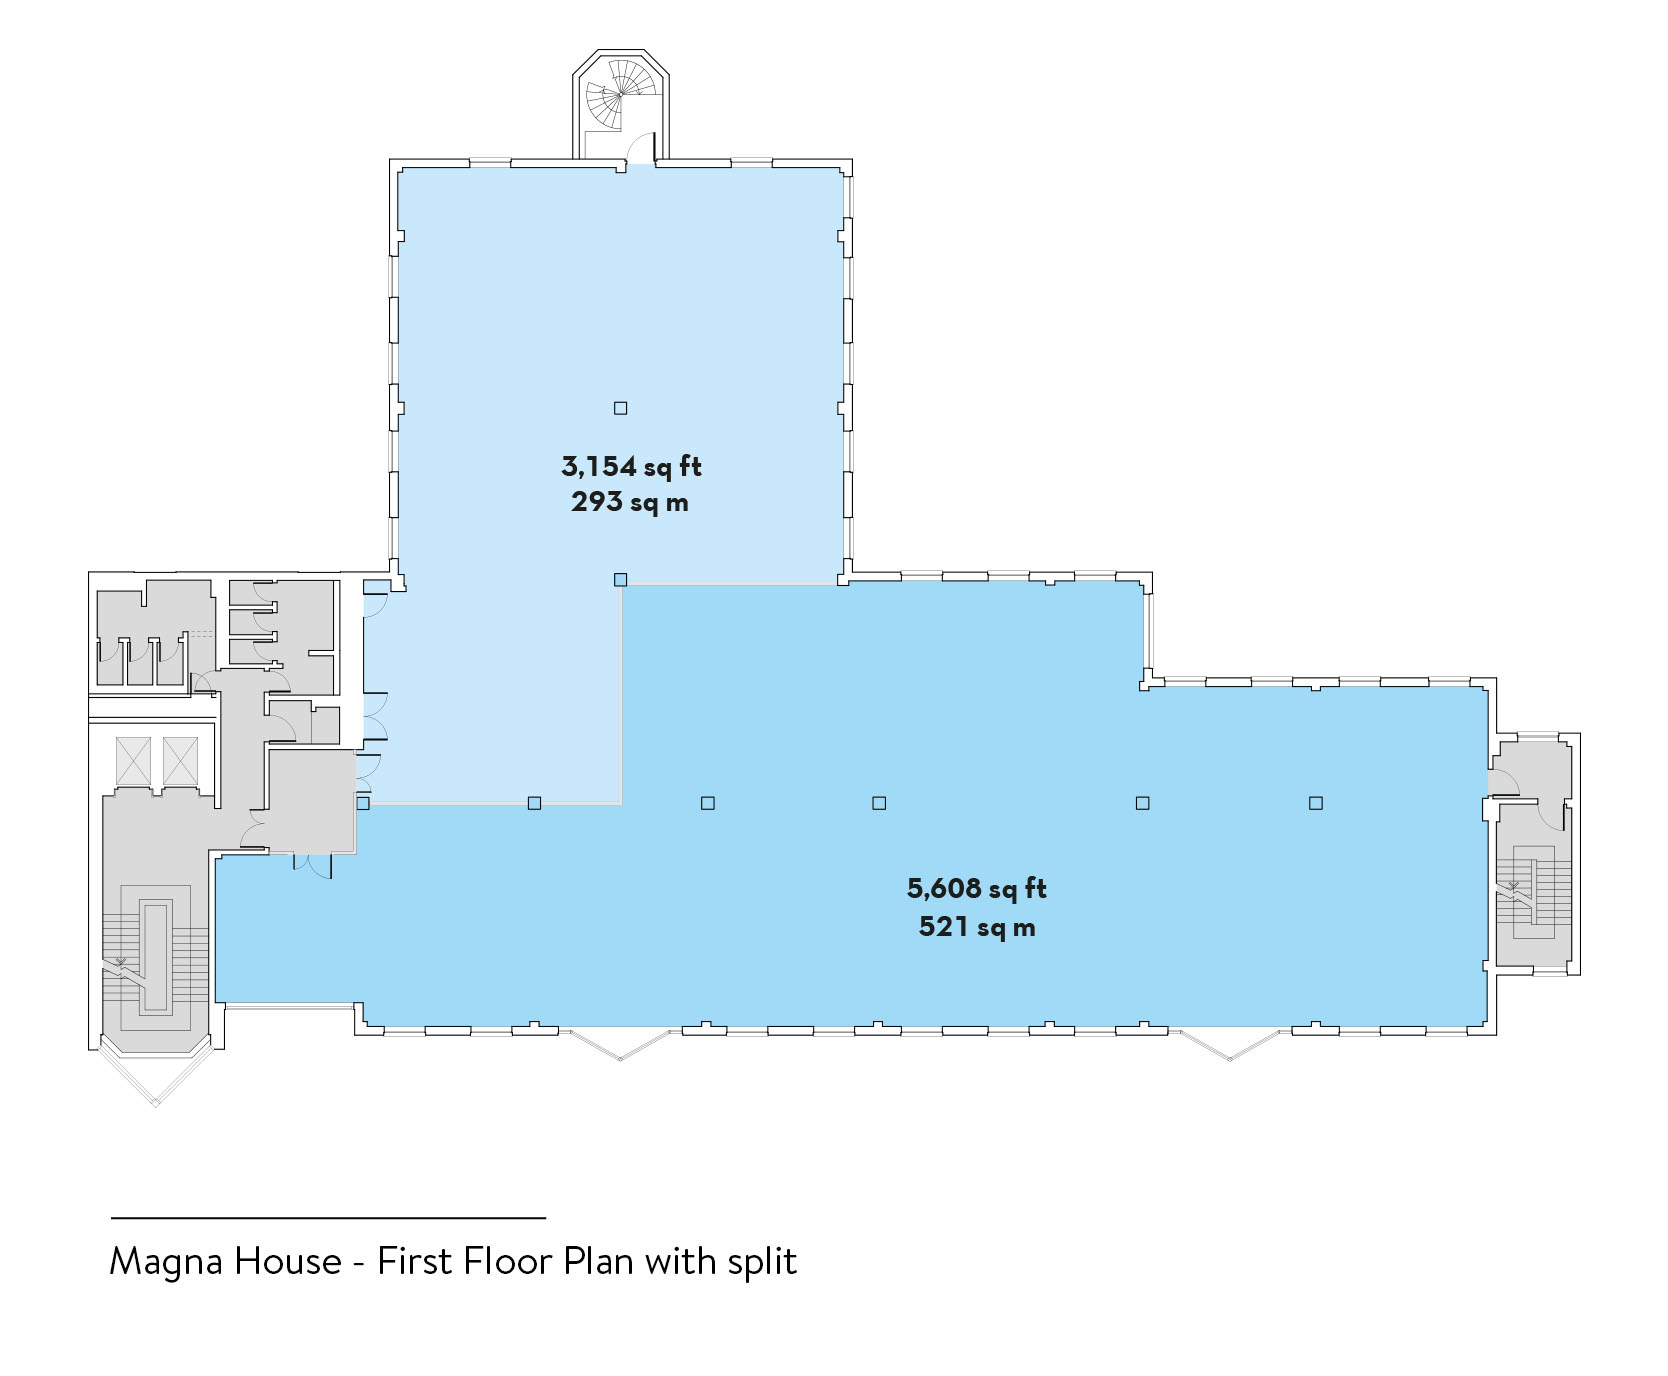 Magna House First Floor Plan